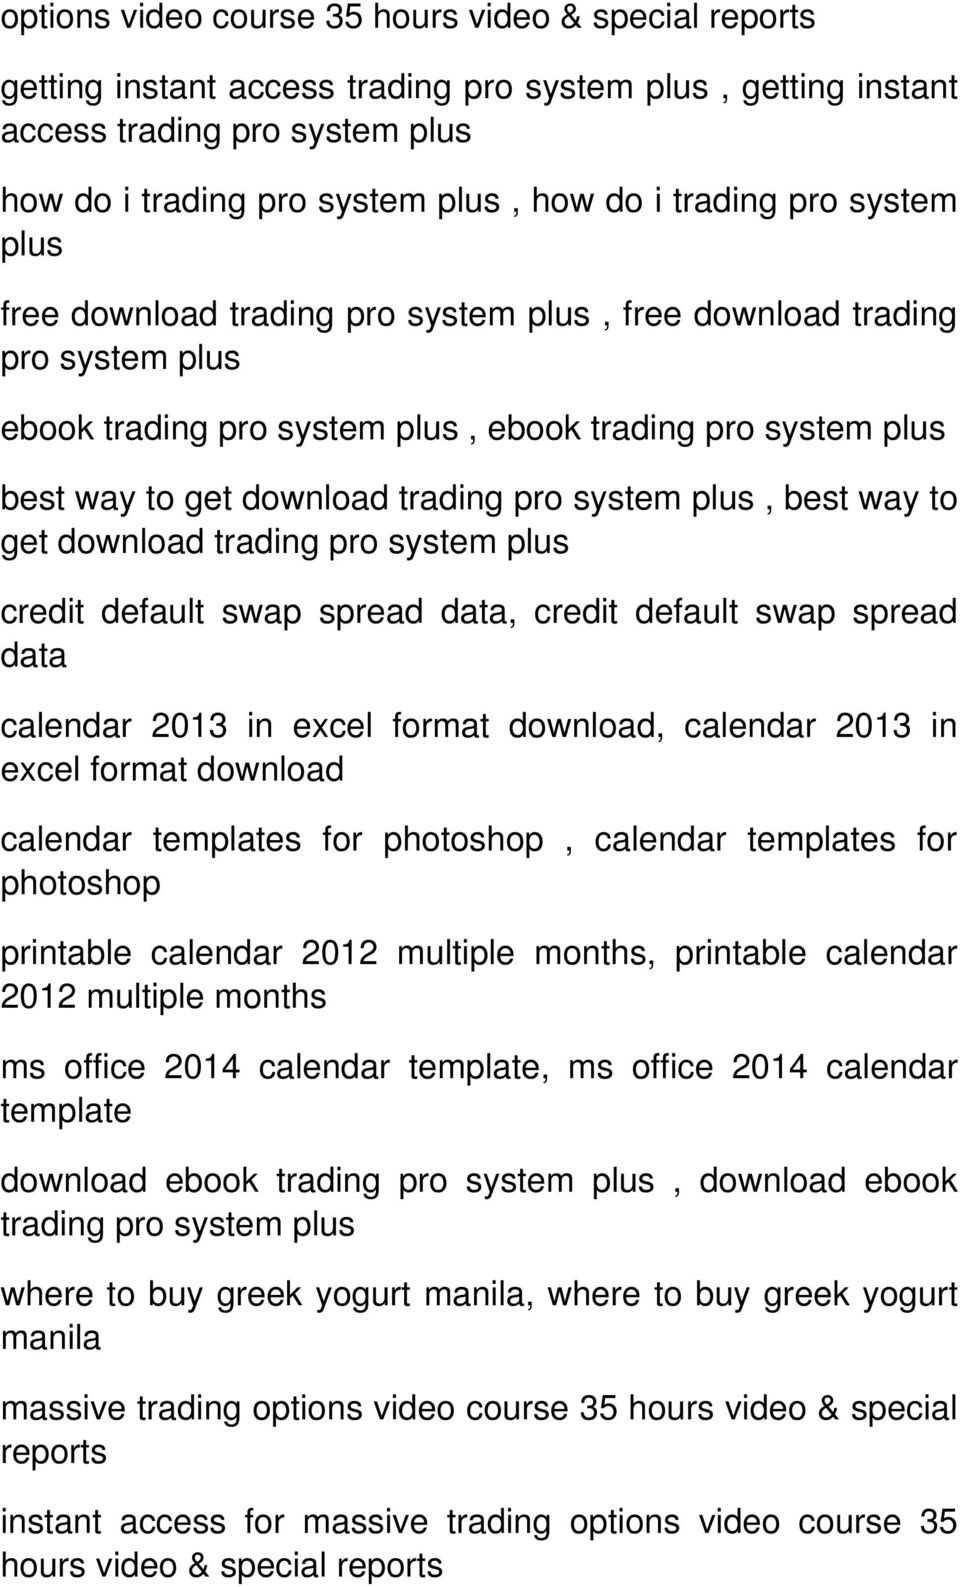 system credit default swap spread data, credit default swap spread data calendar 2013 in excel format download, calendar 2013 in excel format download calendar templates for photoshop, calendar